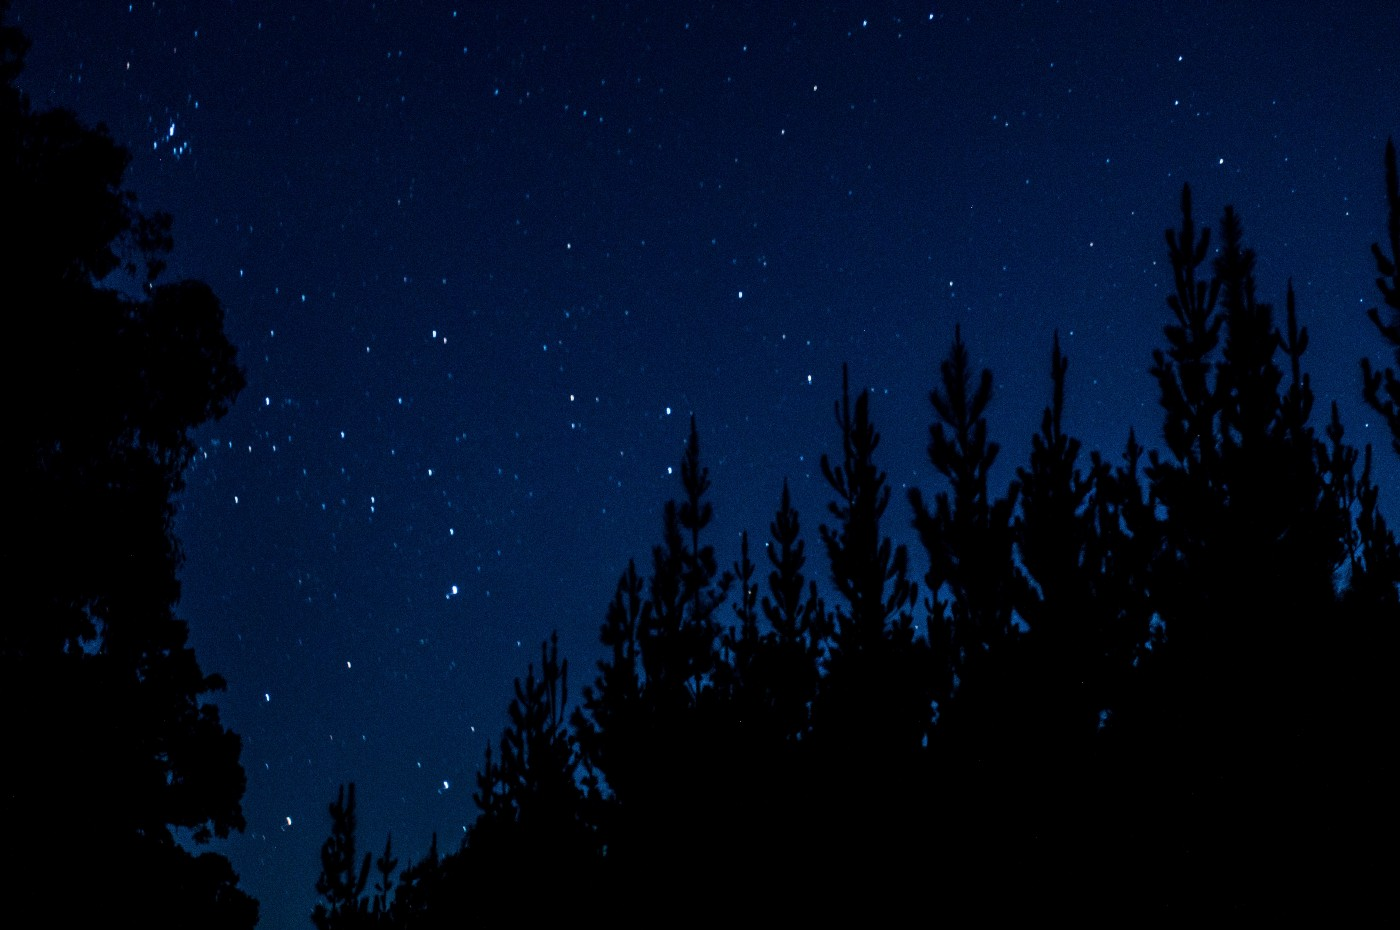 A darkened tree line with bright shining stars in the sky at night.